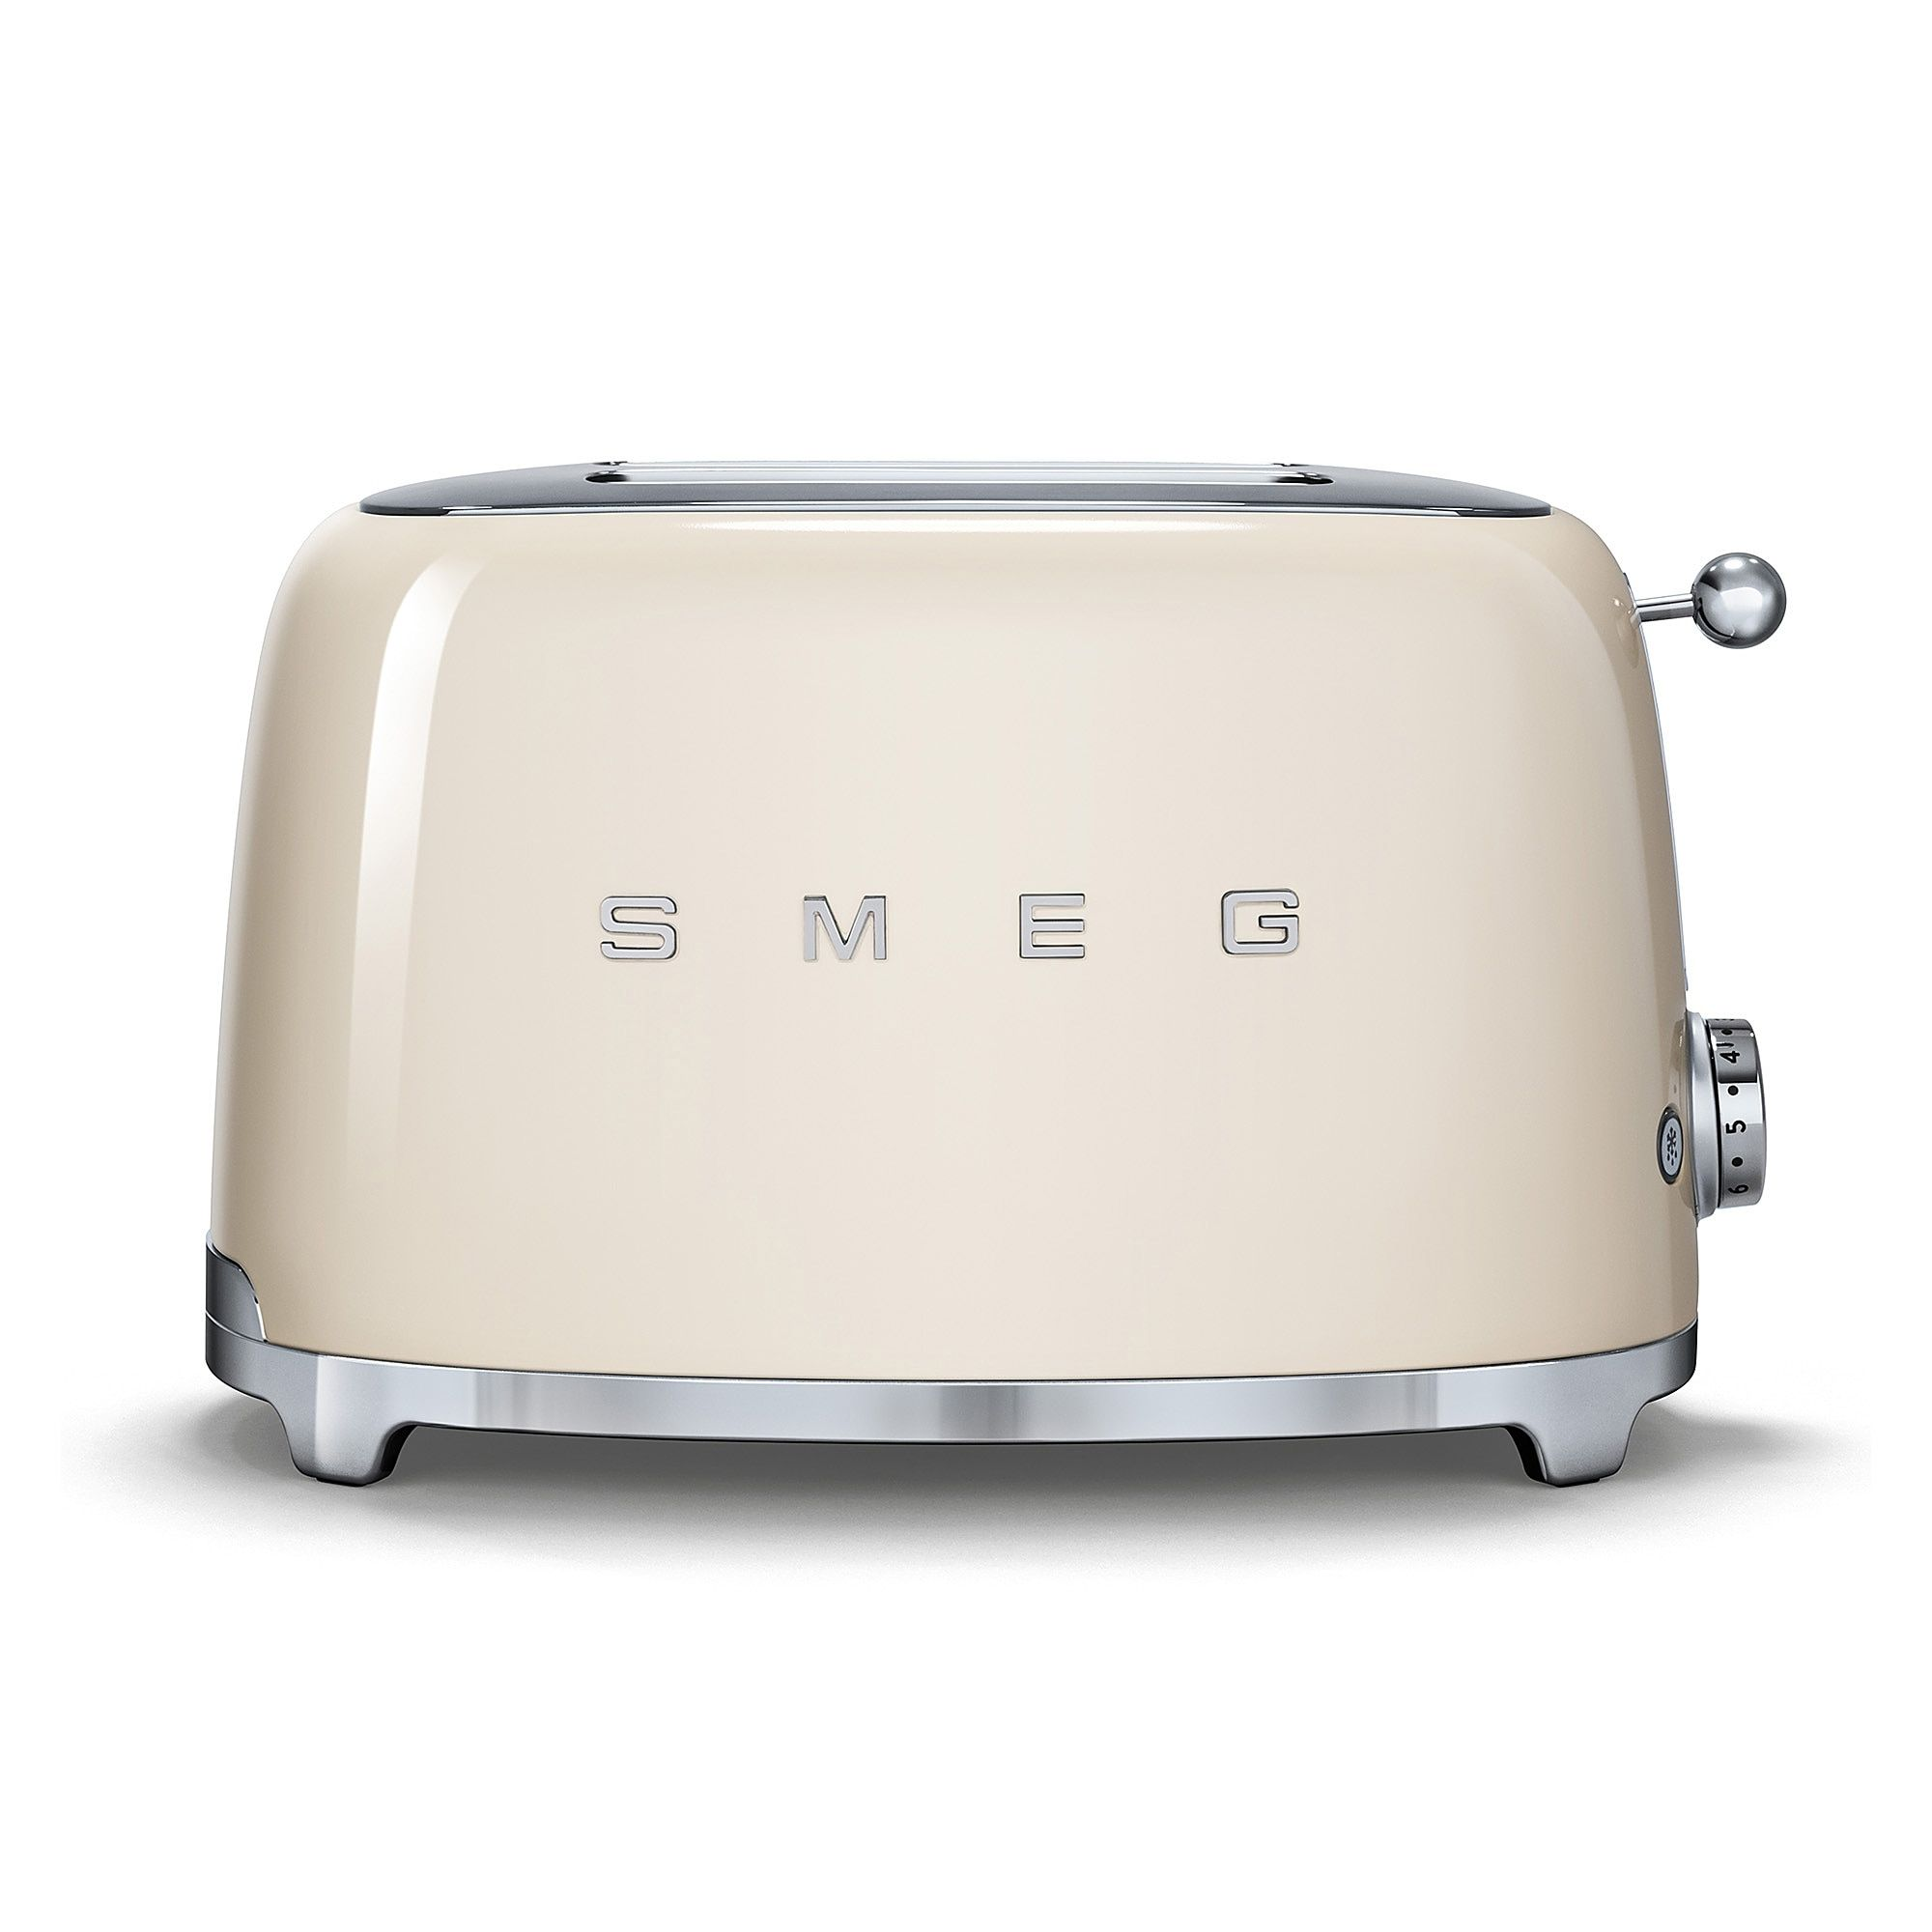 Newest Bed Bath Beyond Toasters Sale Off 64